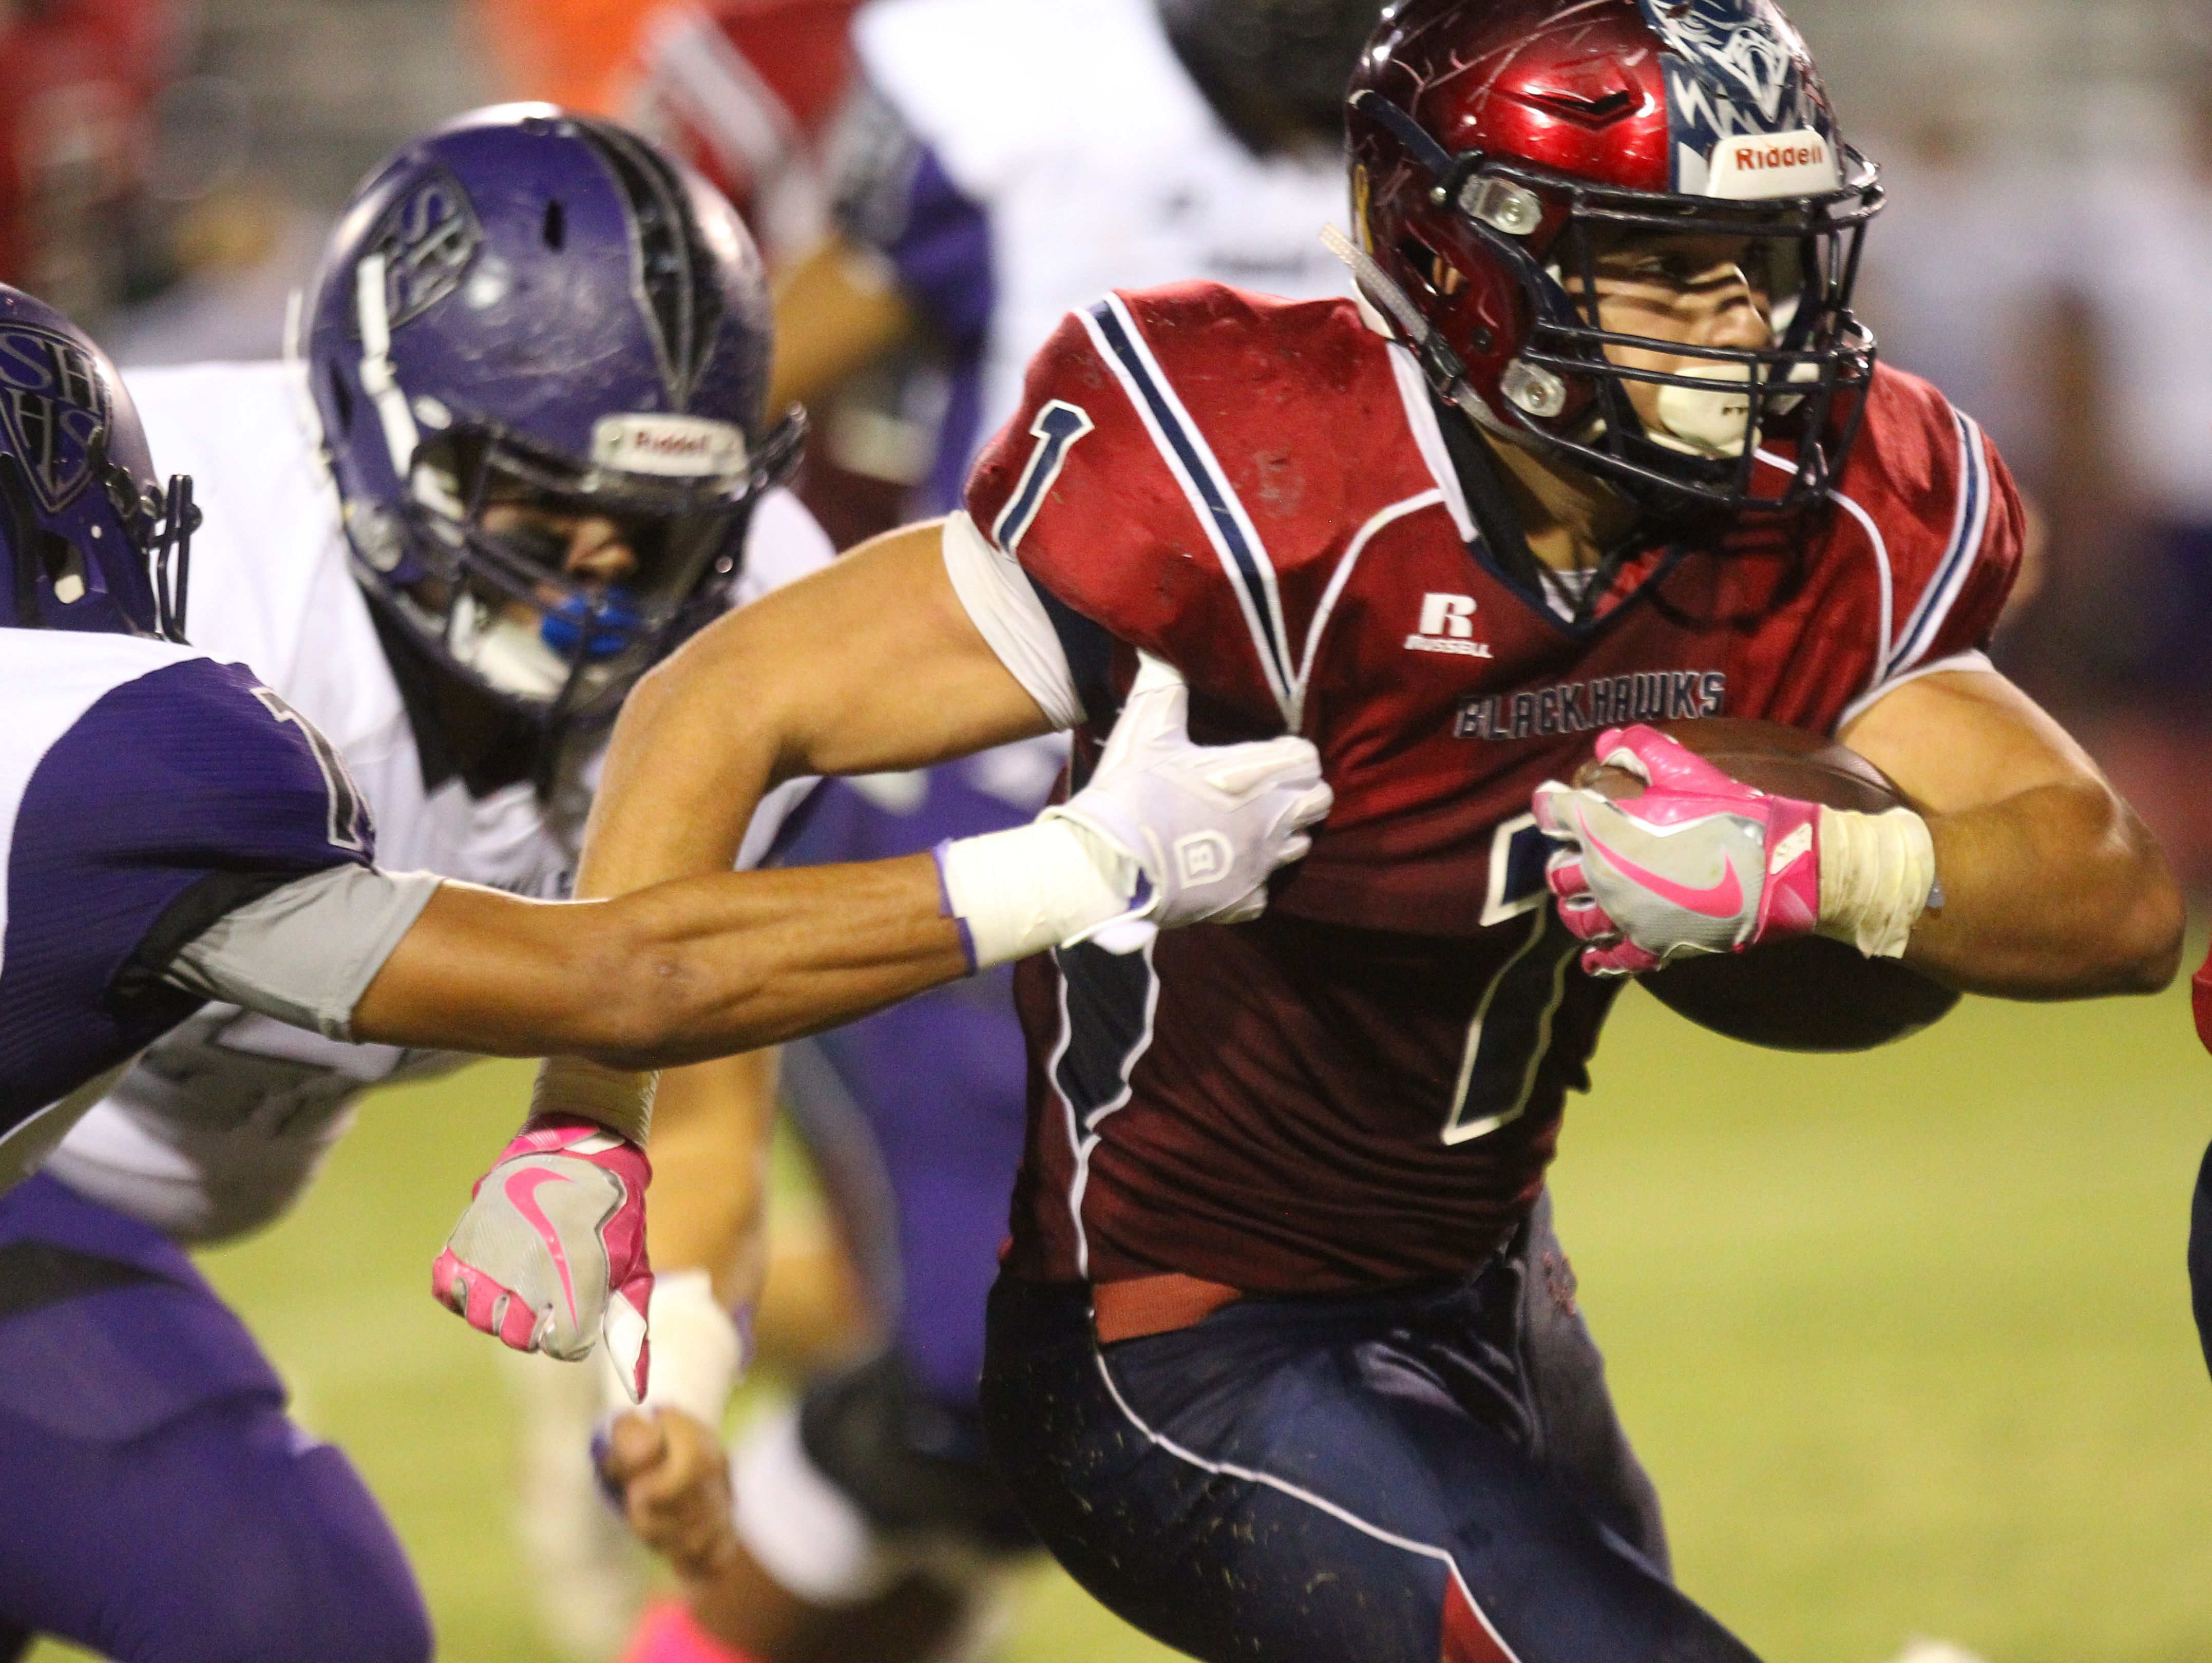 La Quinta High School's Benji Cordova runs for yardage against Shadow Hills High School at La Quinta.